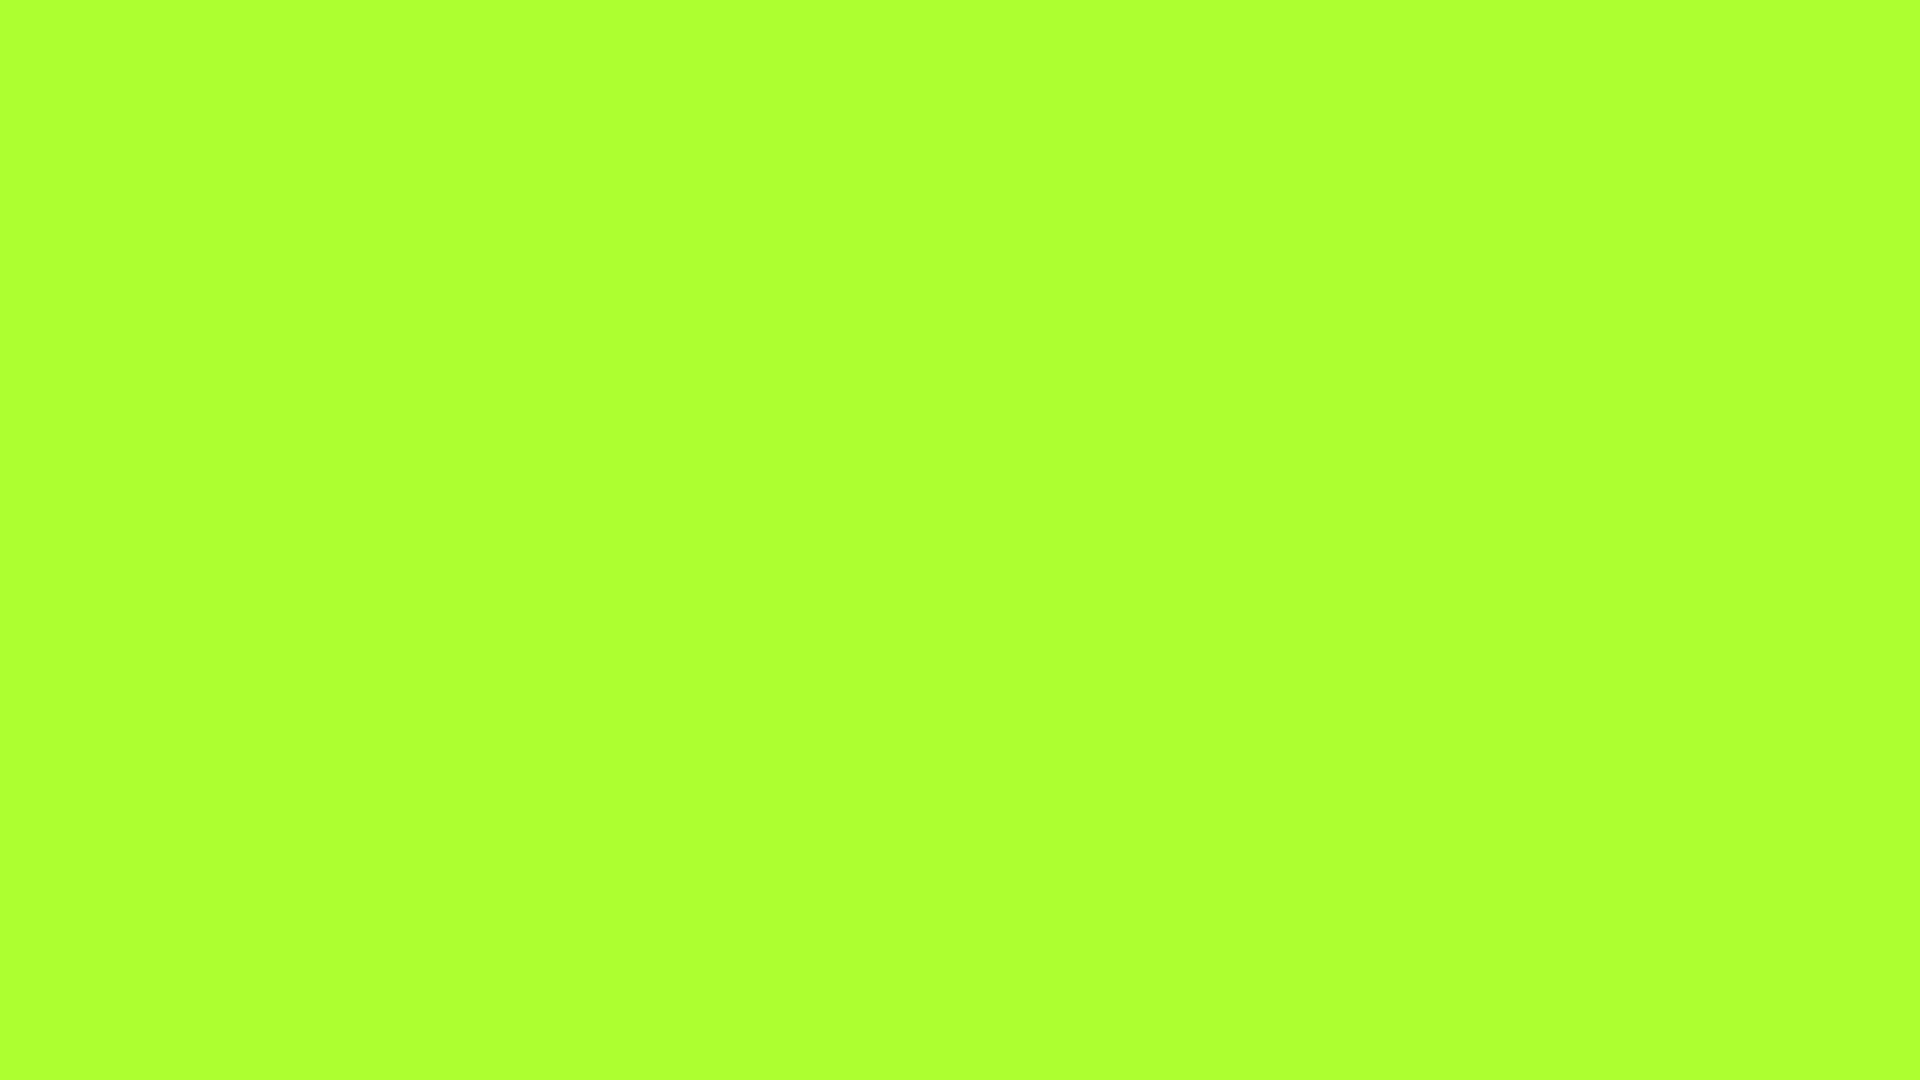 1920x1080 Green-yellow Solid Color Background